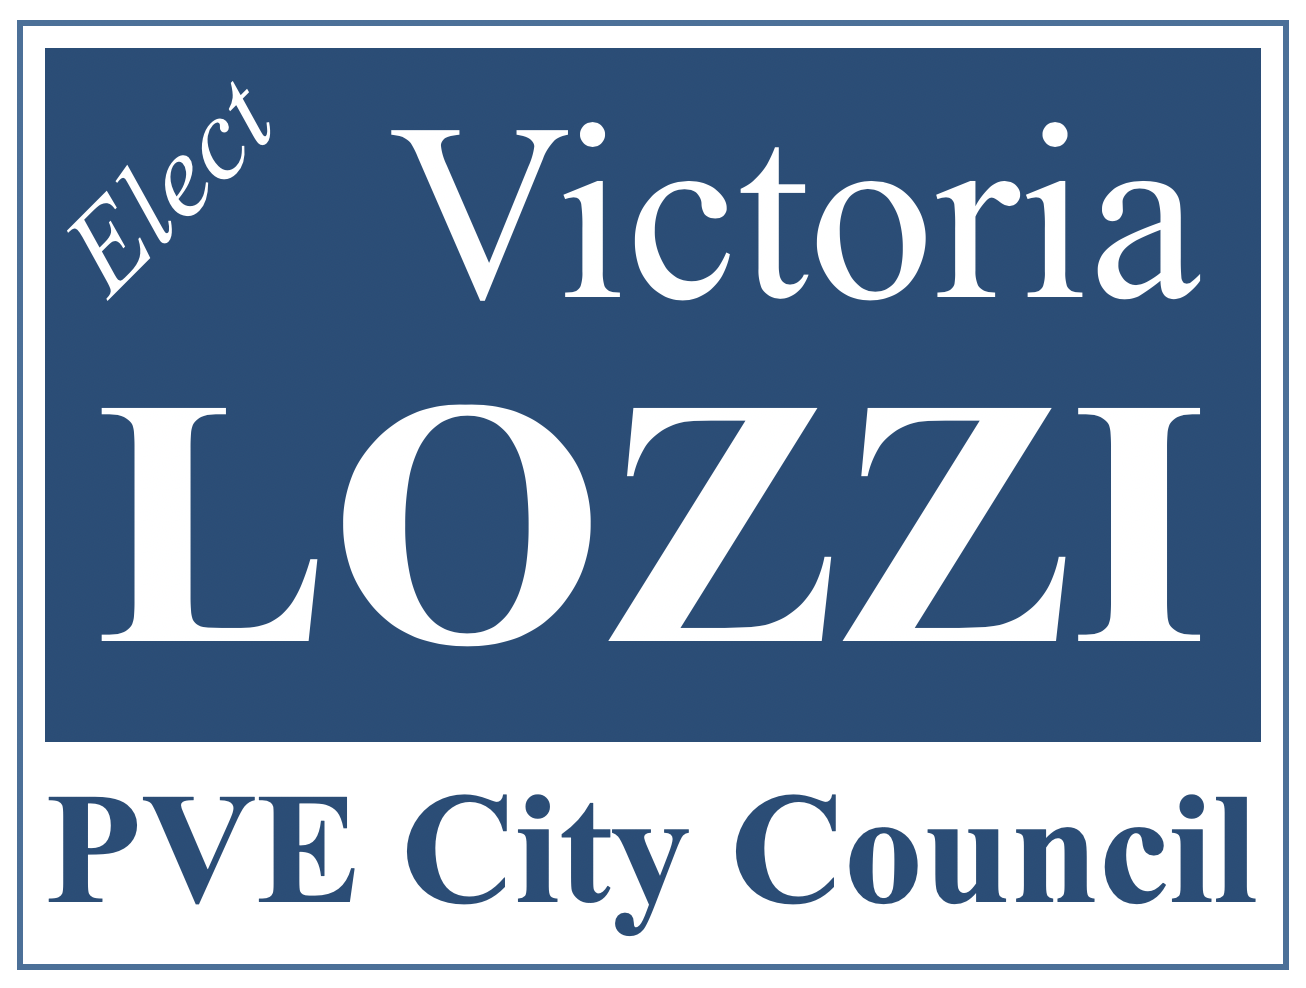 Victoria Lozzi for PVE City Council